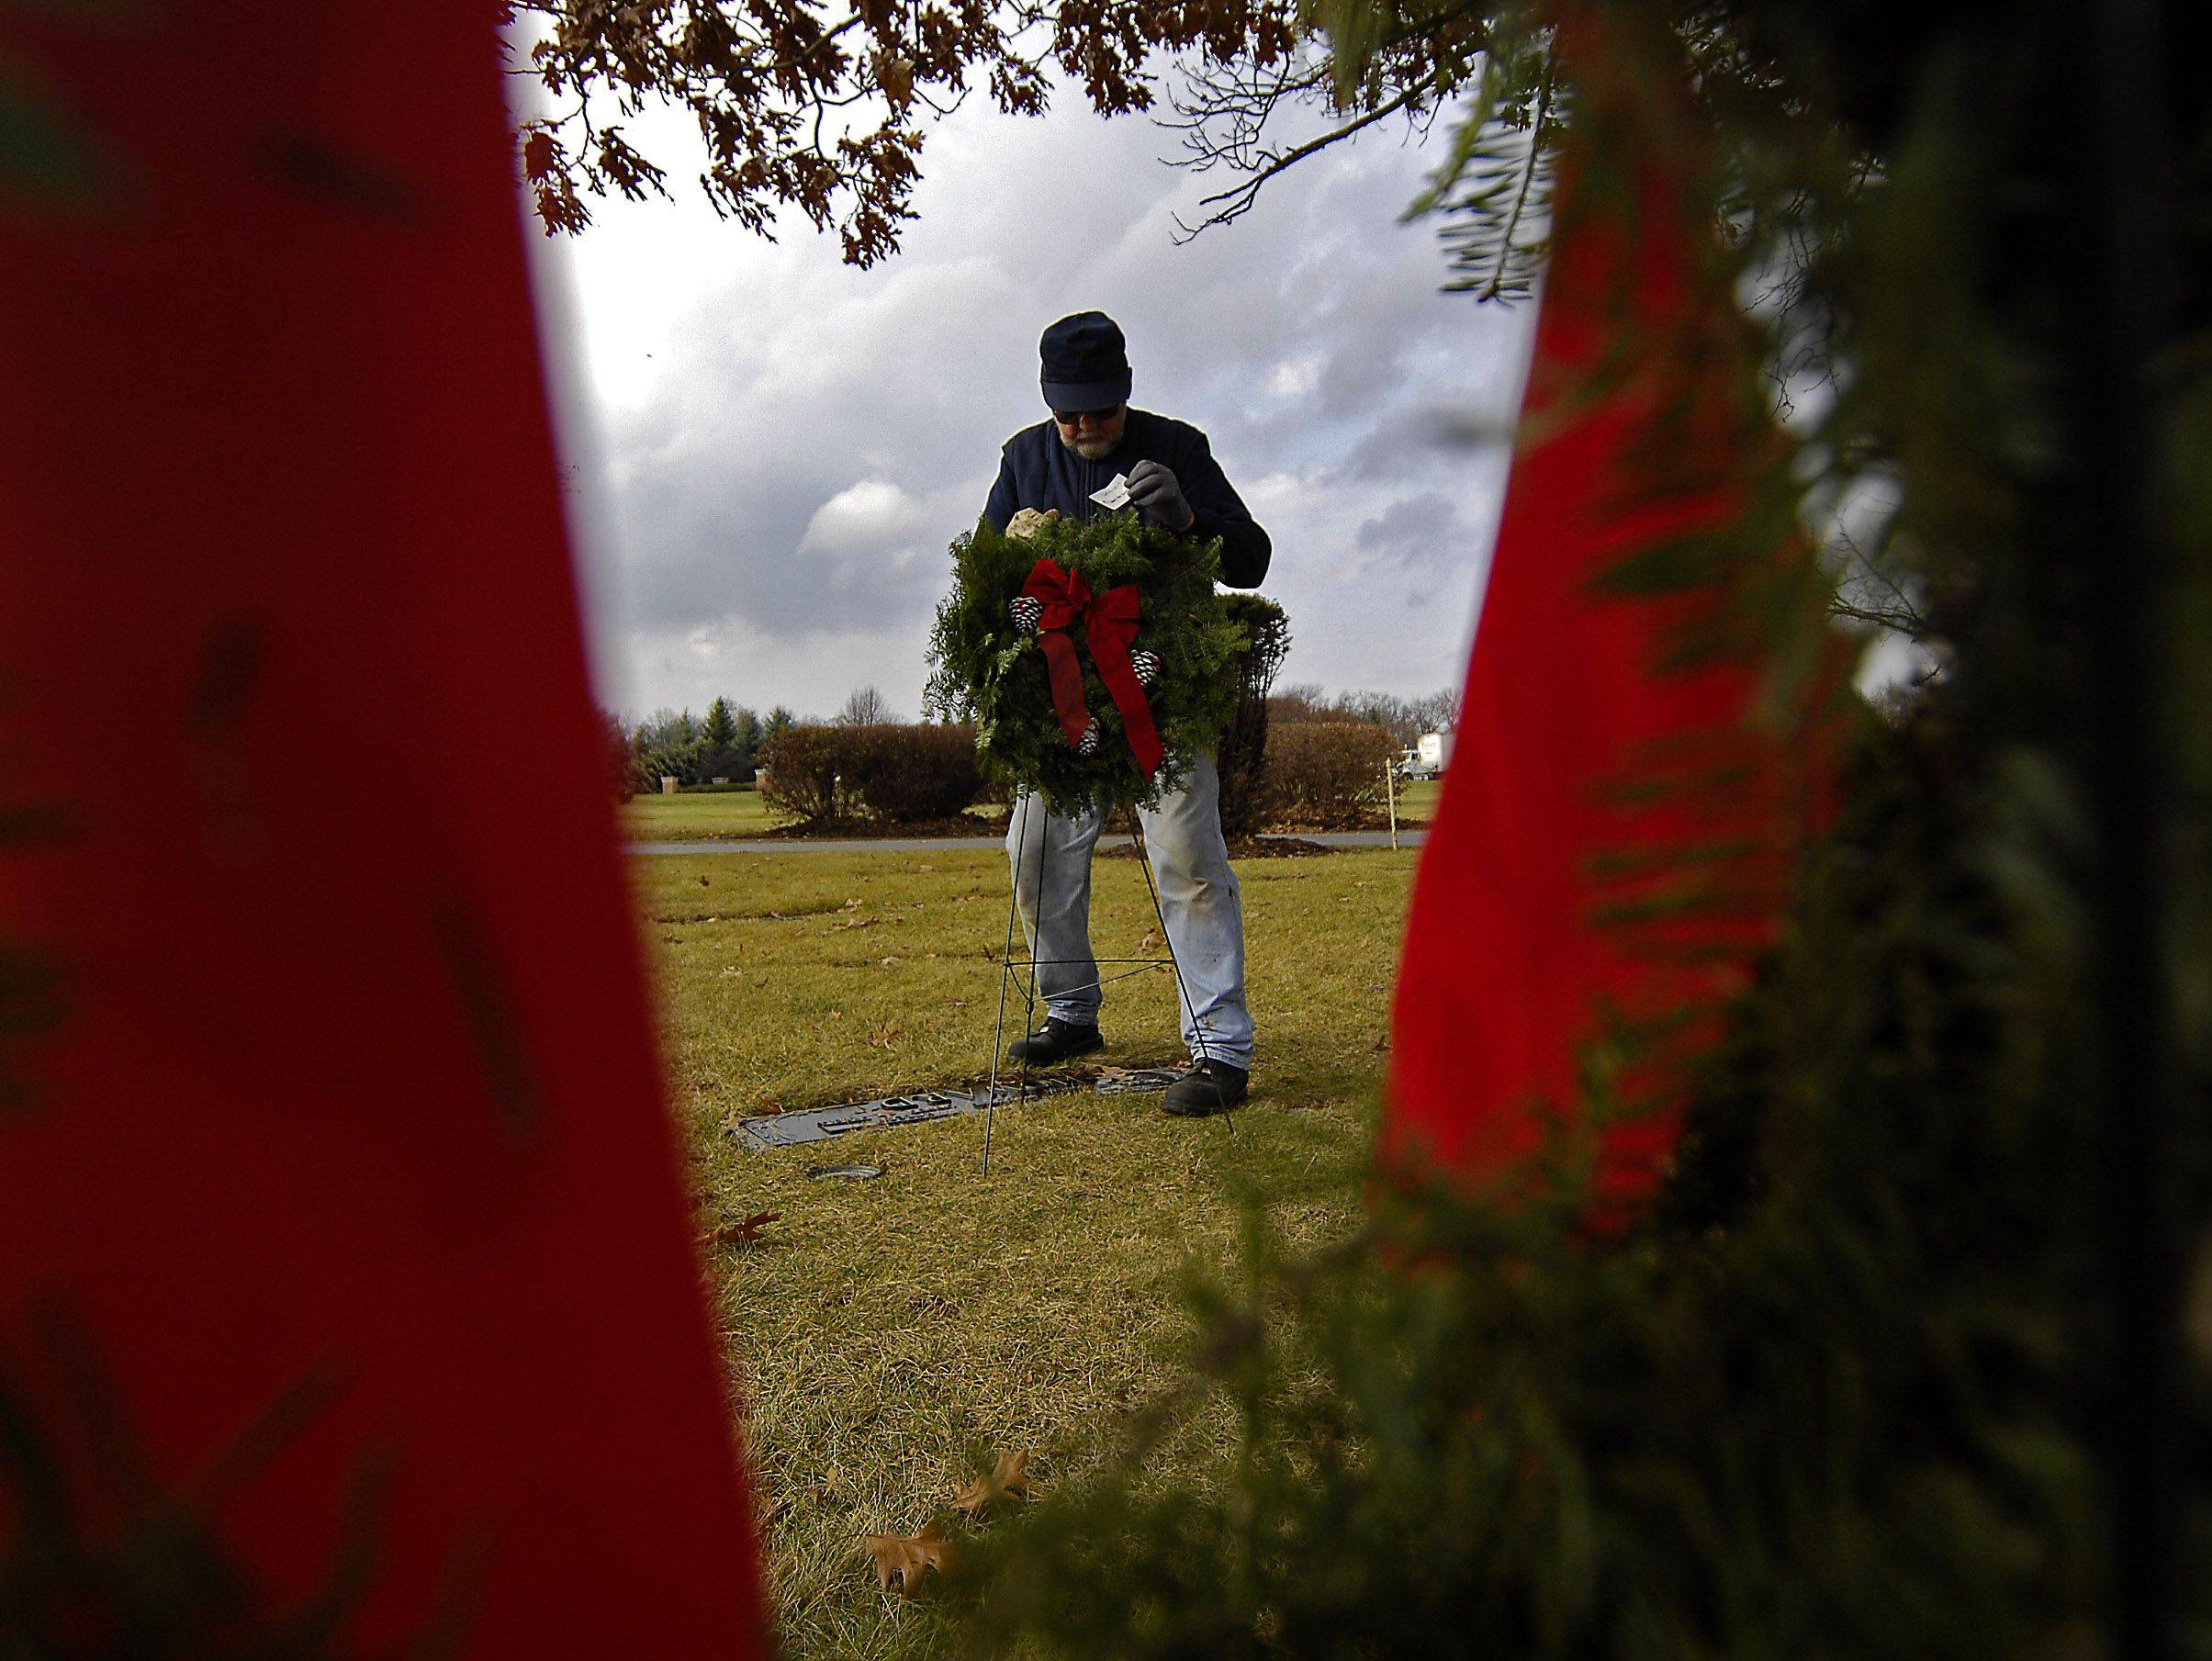 Jim Erboe places wreaths on graves at River Valley Memorial Gardens in West Dundee Monday. Erboe said he's been working in cemeteries for 52 years.